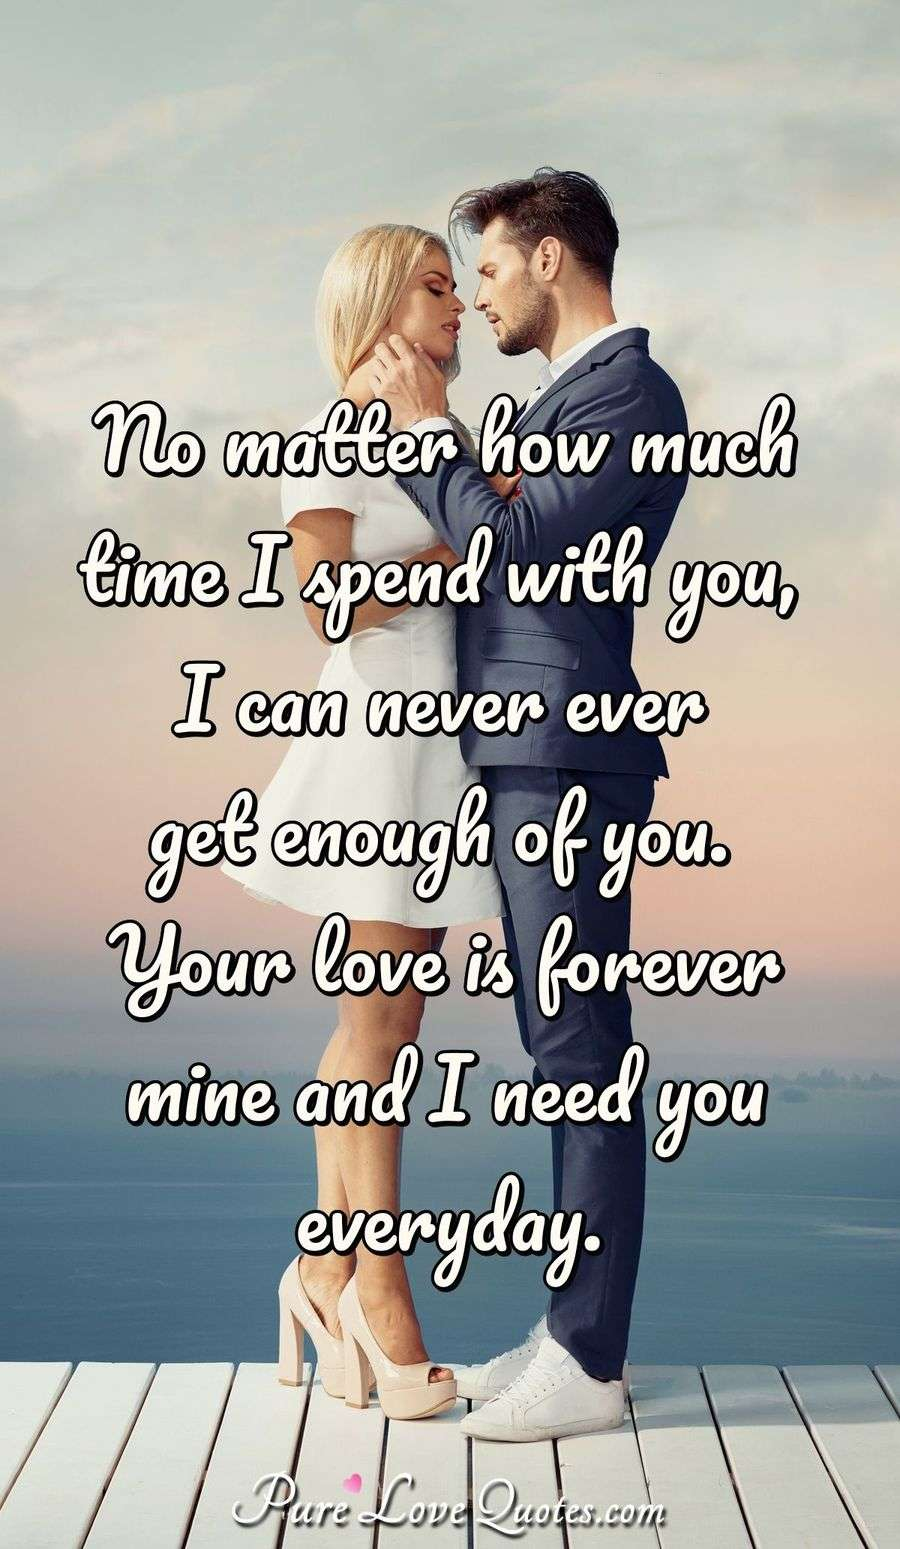 I Love You Quotes: No Matter How Much Time I Spend With You, I Can Never Ever